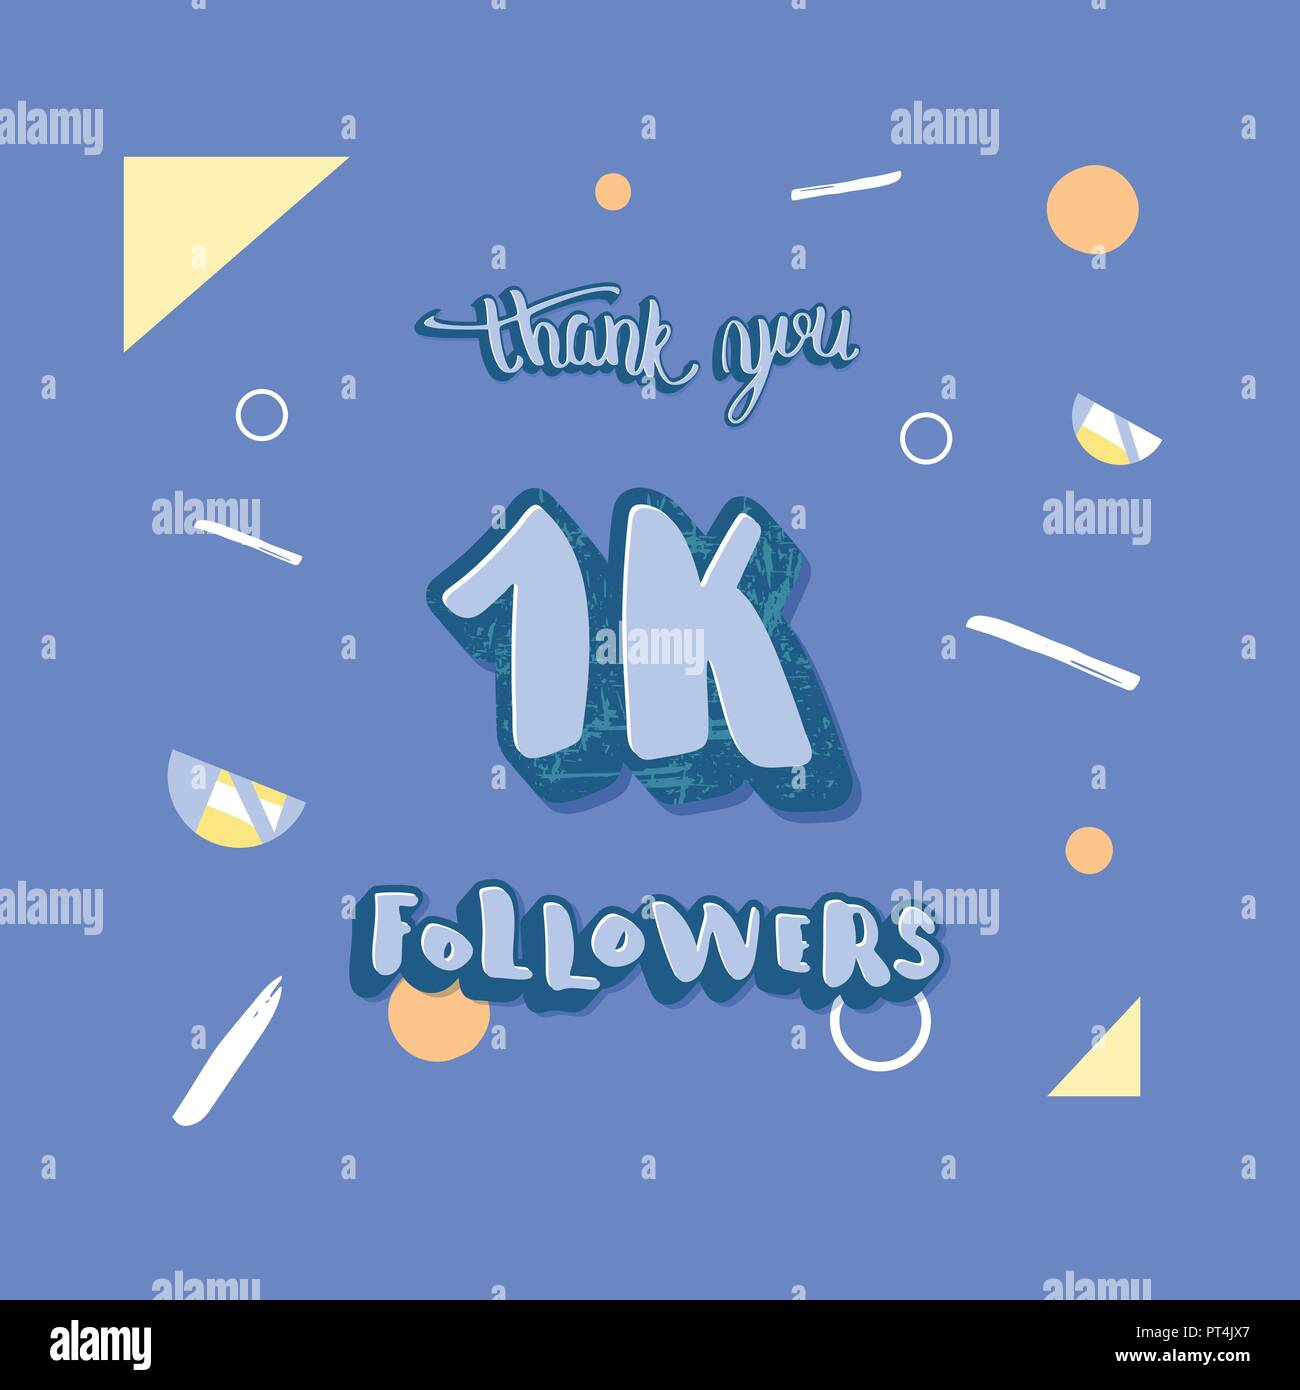 social media template of 1k followers thank you banner for internet